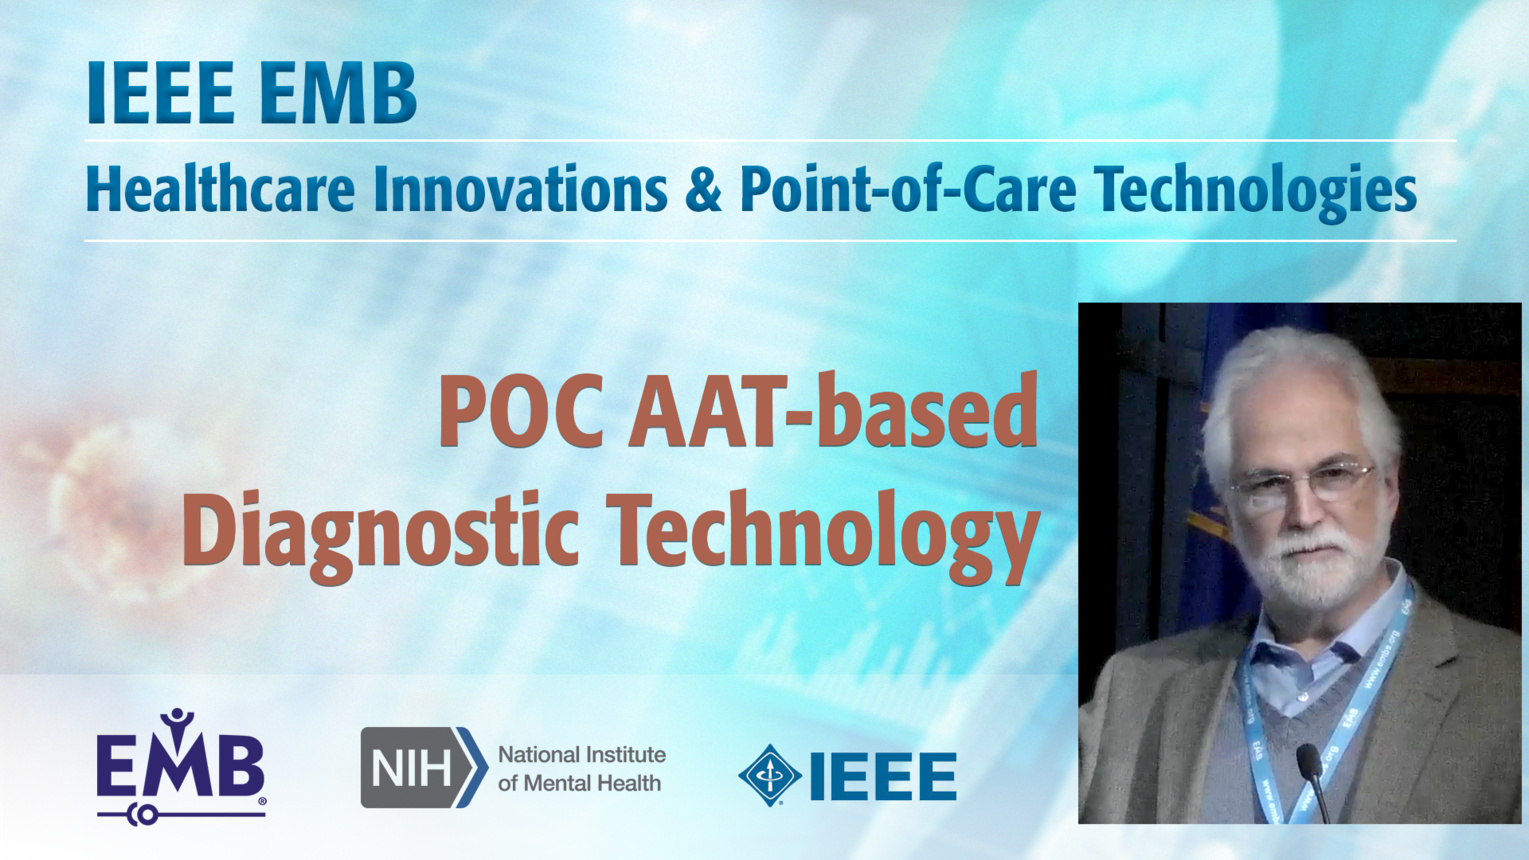 POC AAT-based Diagnostic Technology -  Paul Yager - IEEE EMBS at NIH, 2019